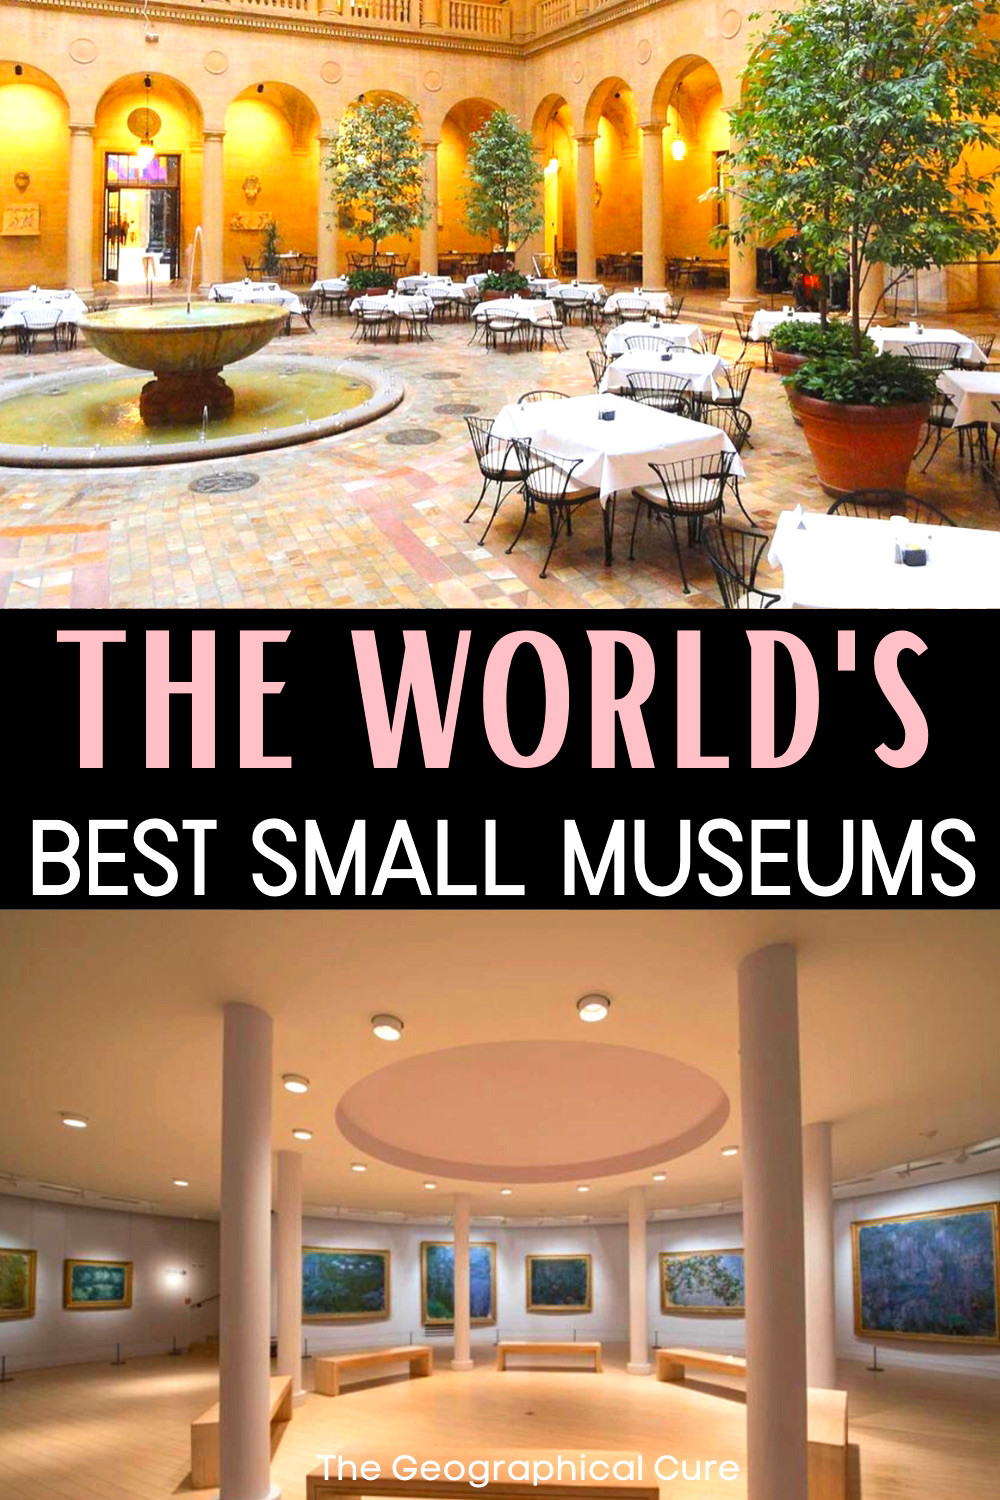 ultimate guide to the best small museums in the United States and Europe